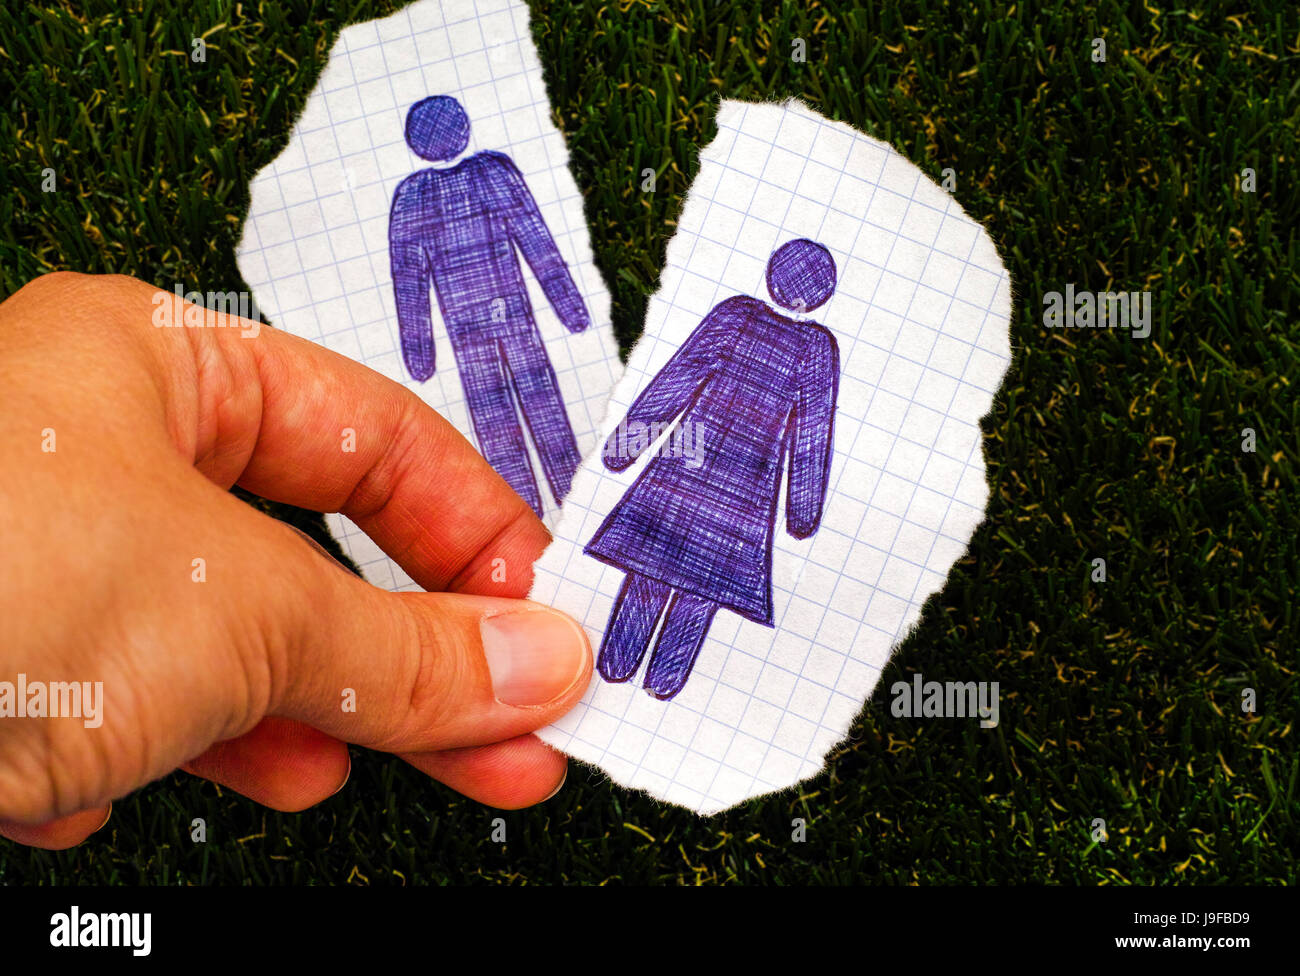 Person hand holding piece of paper with hand drawn woman figure. Other piece of paper with drawn man figure on grass - Stock Image